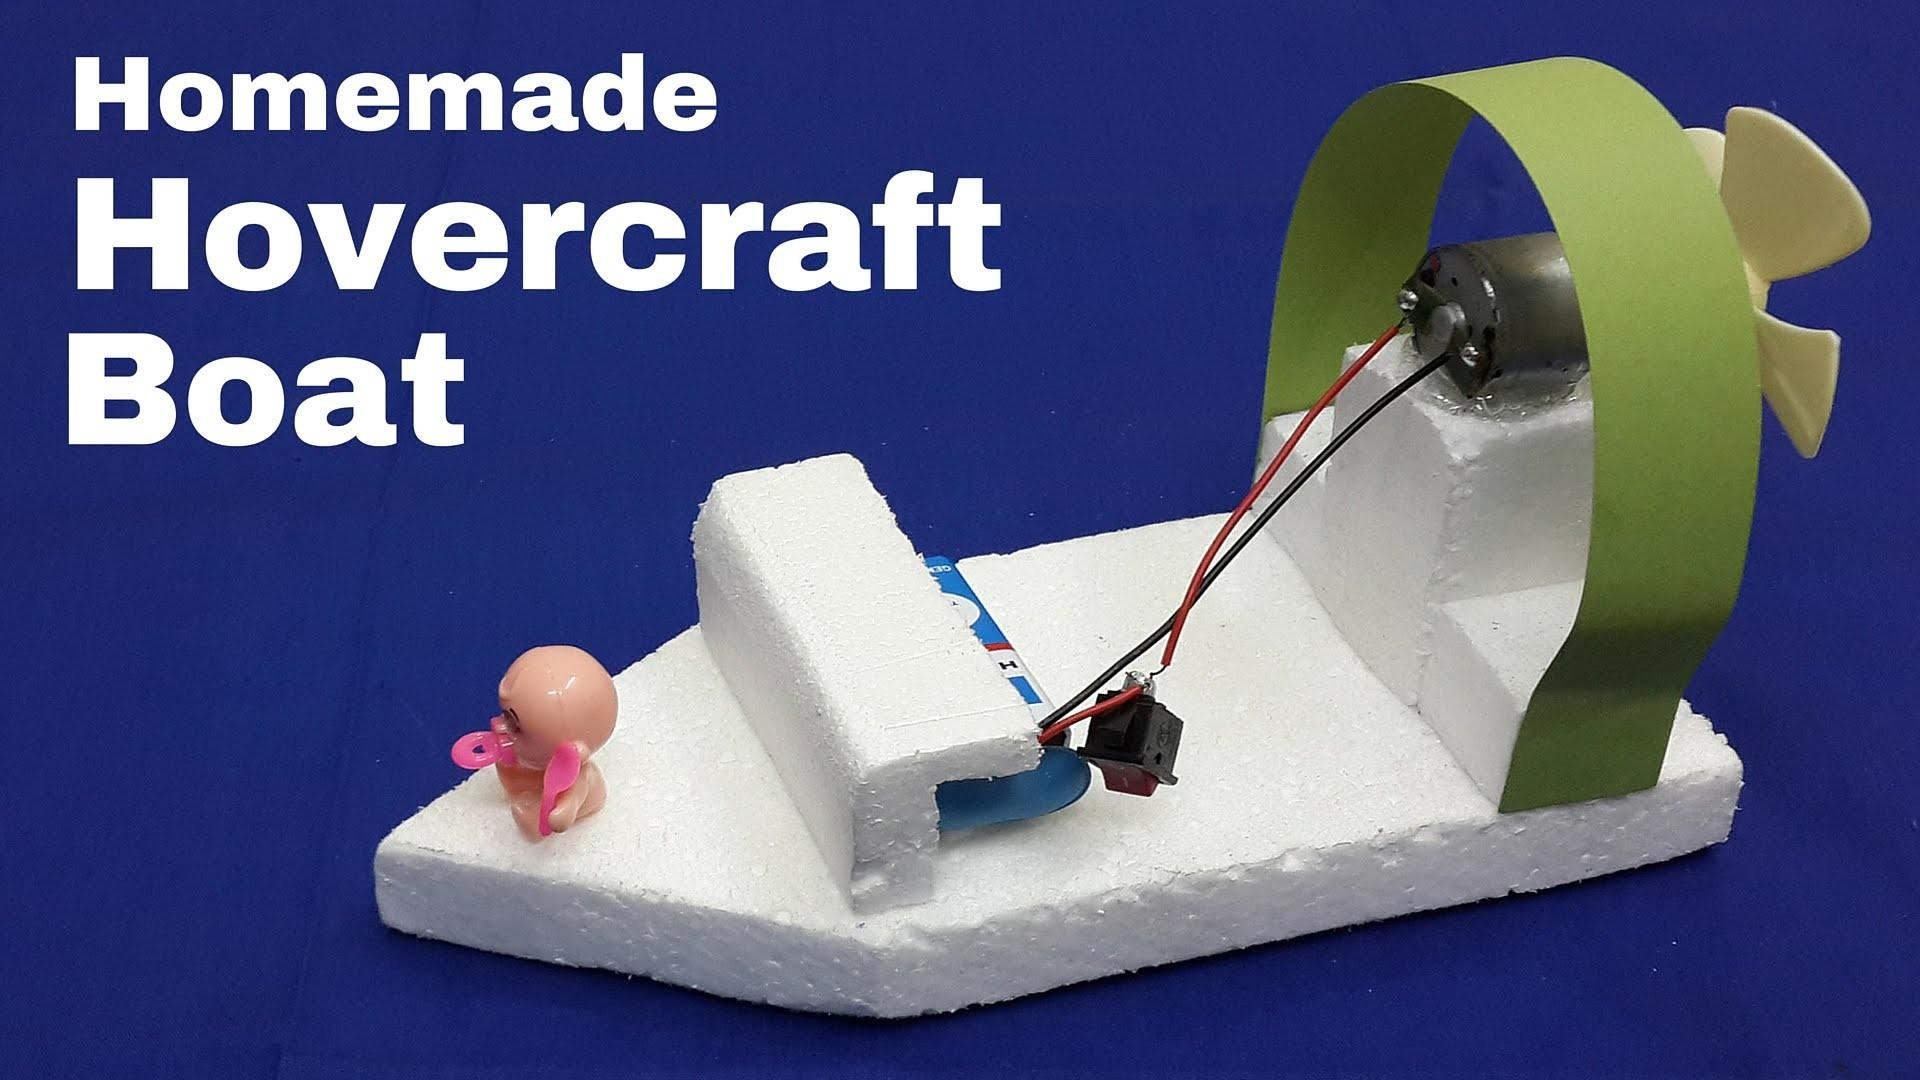 Make Electric Toy Hovercraft Boat Moves